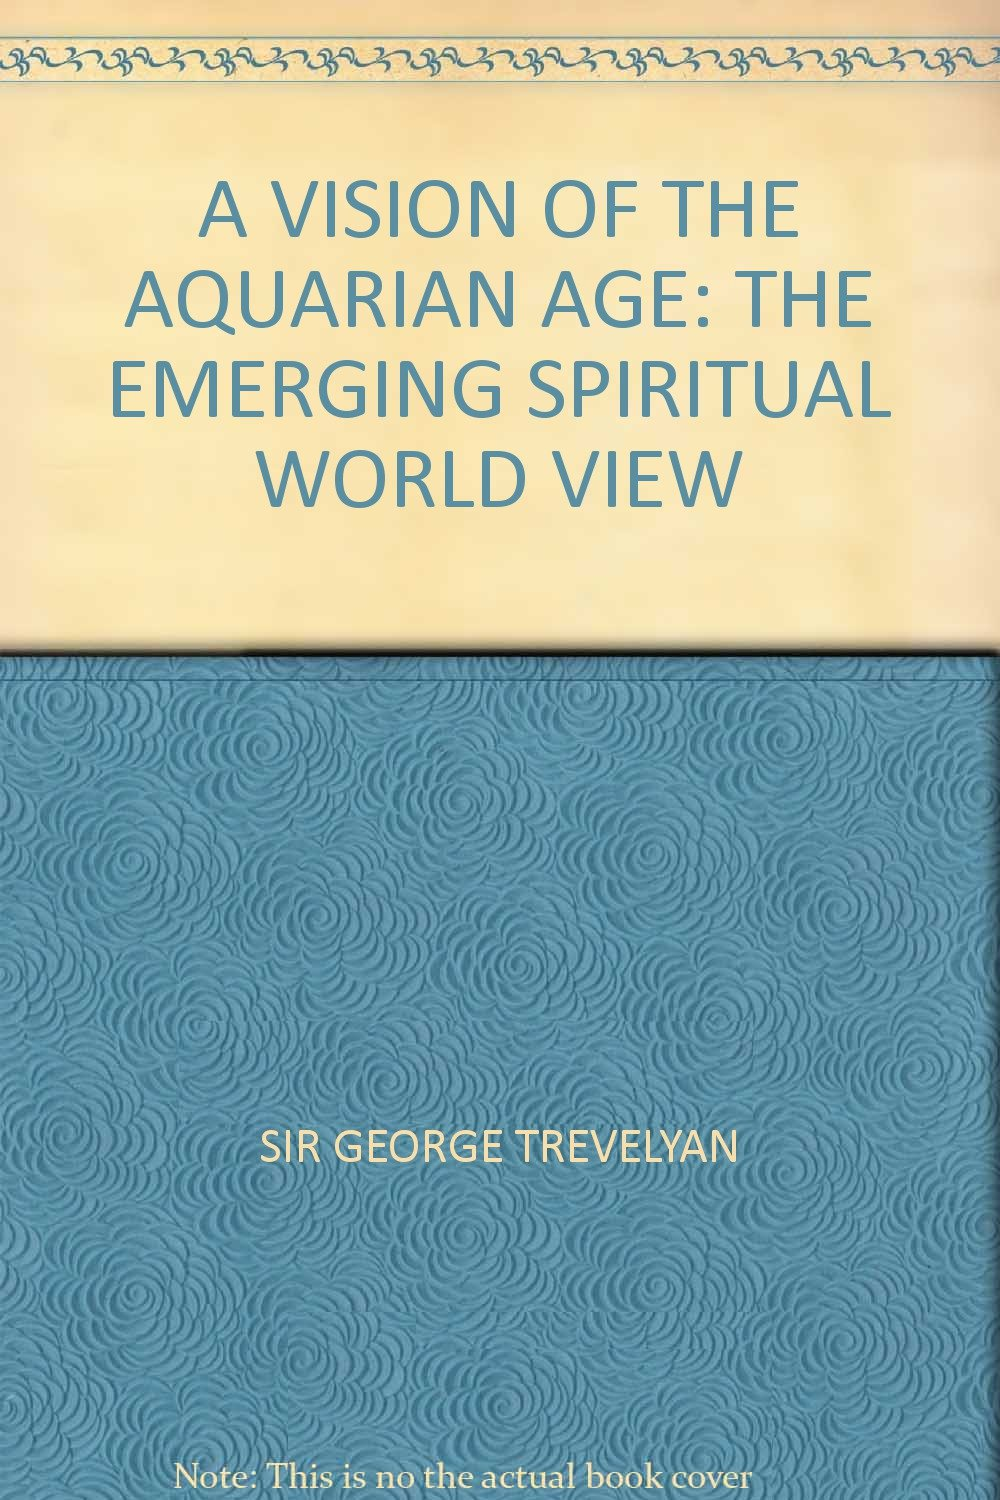 A Vision of the Aquarian Age